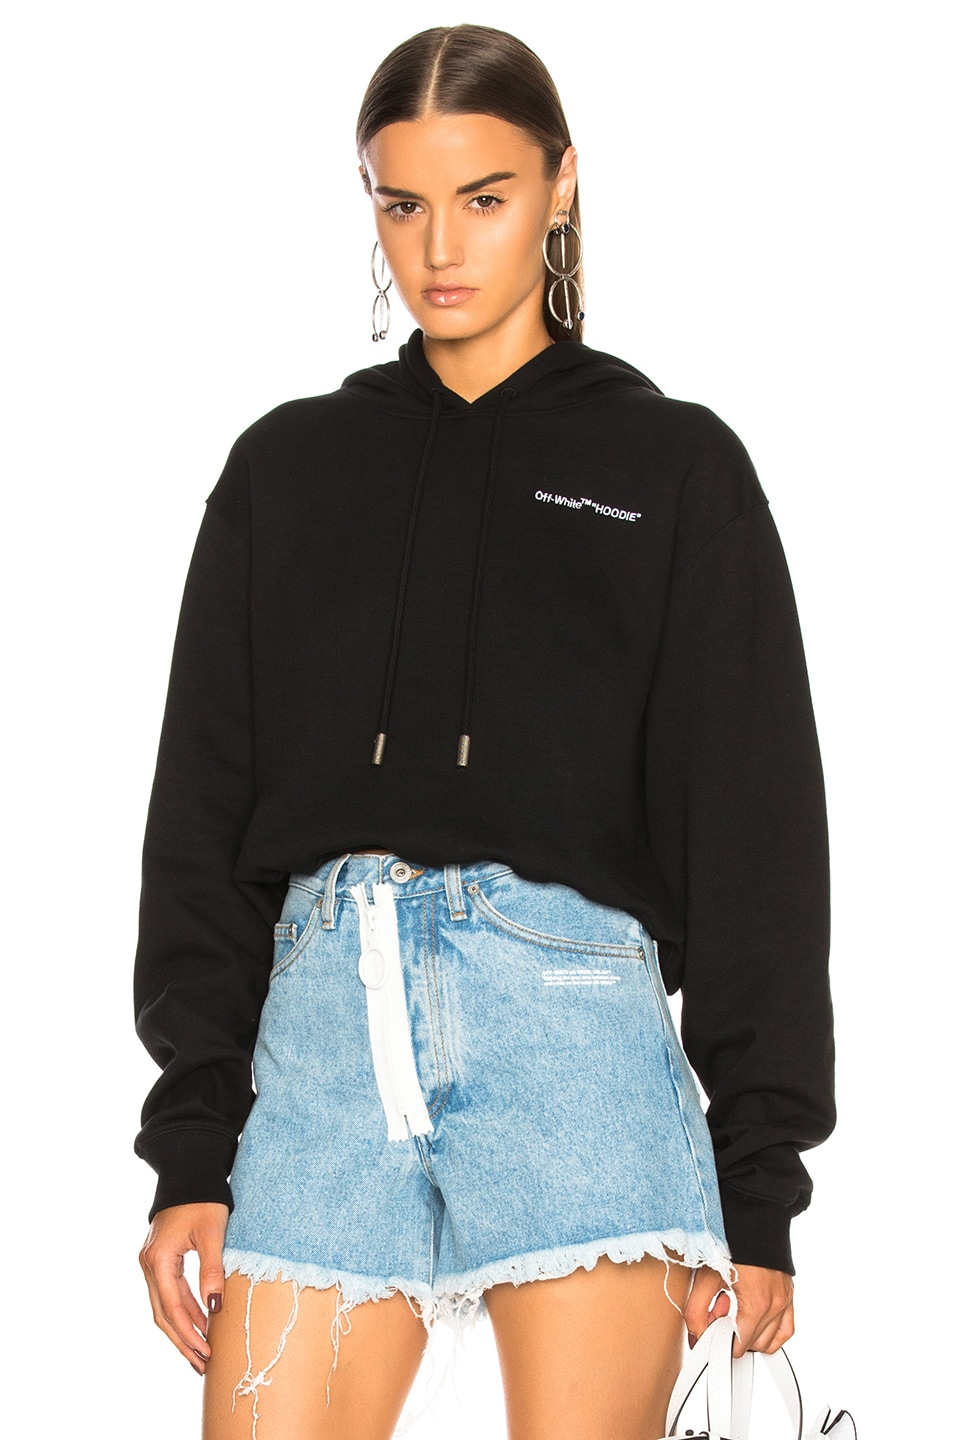 4195961c56ae Image 1 of OFF-WHITE Quotes Cropped Hoodie in Black   White